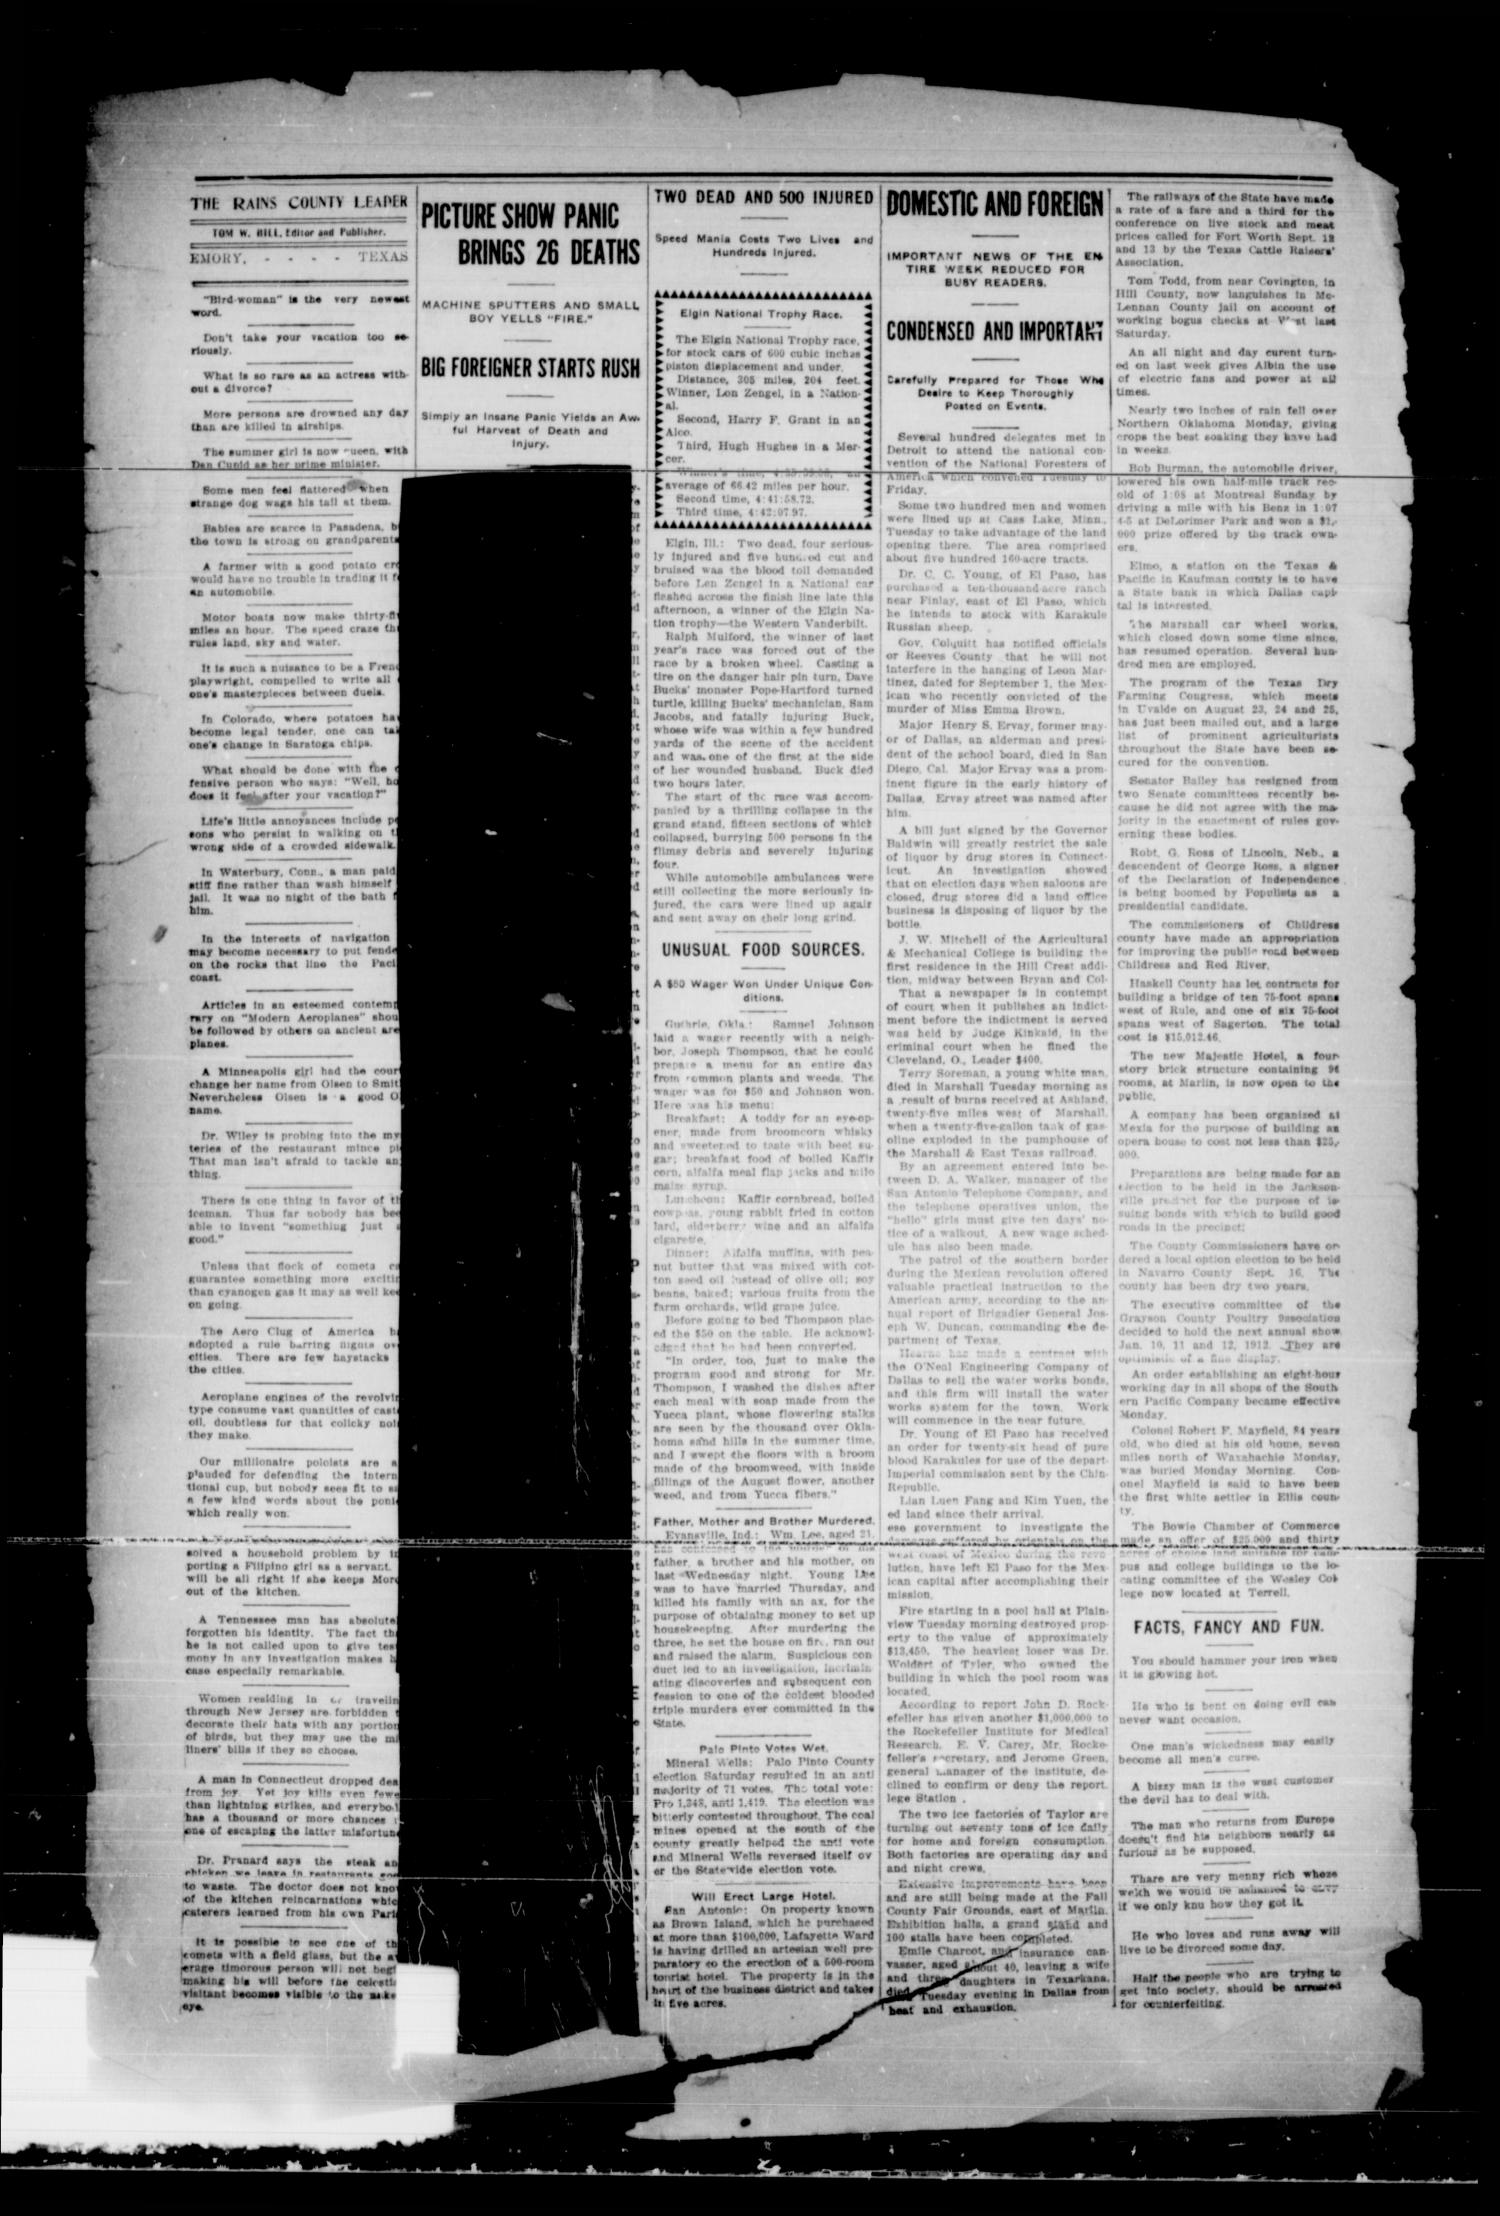 Rains County Leader. (Emory, Tex.), Vol. 23, No. 32, Ed. 1 Friday, September 1, 1911                                                                                                      [Sequence #]: 3 of 8